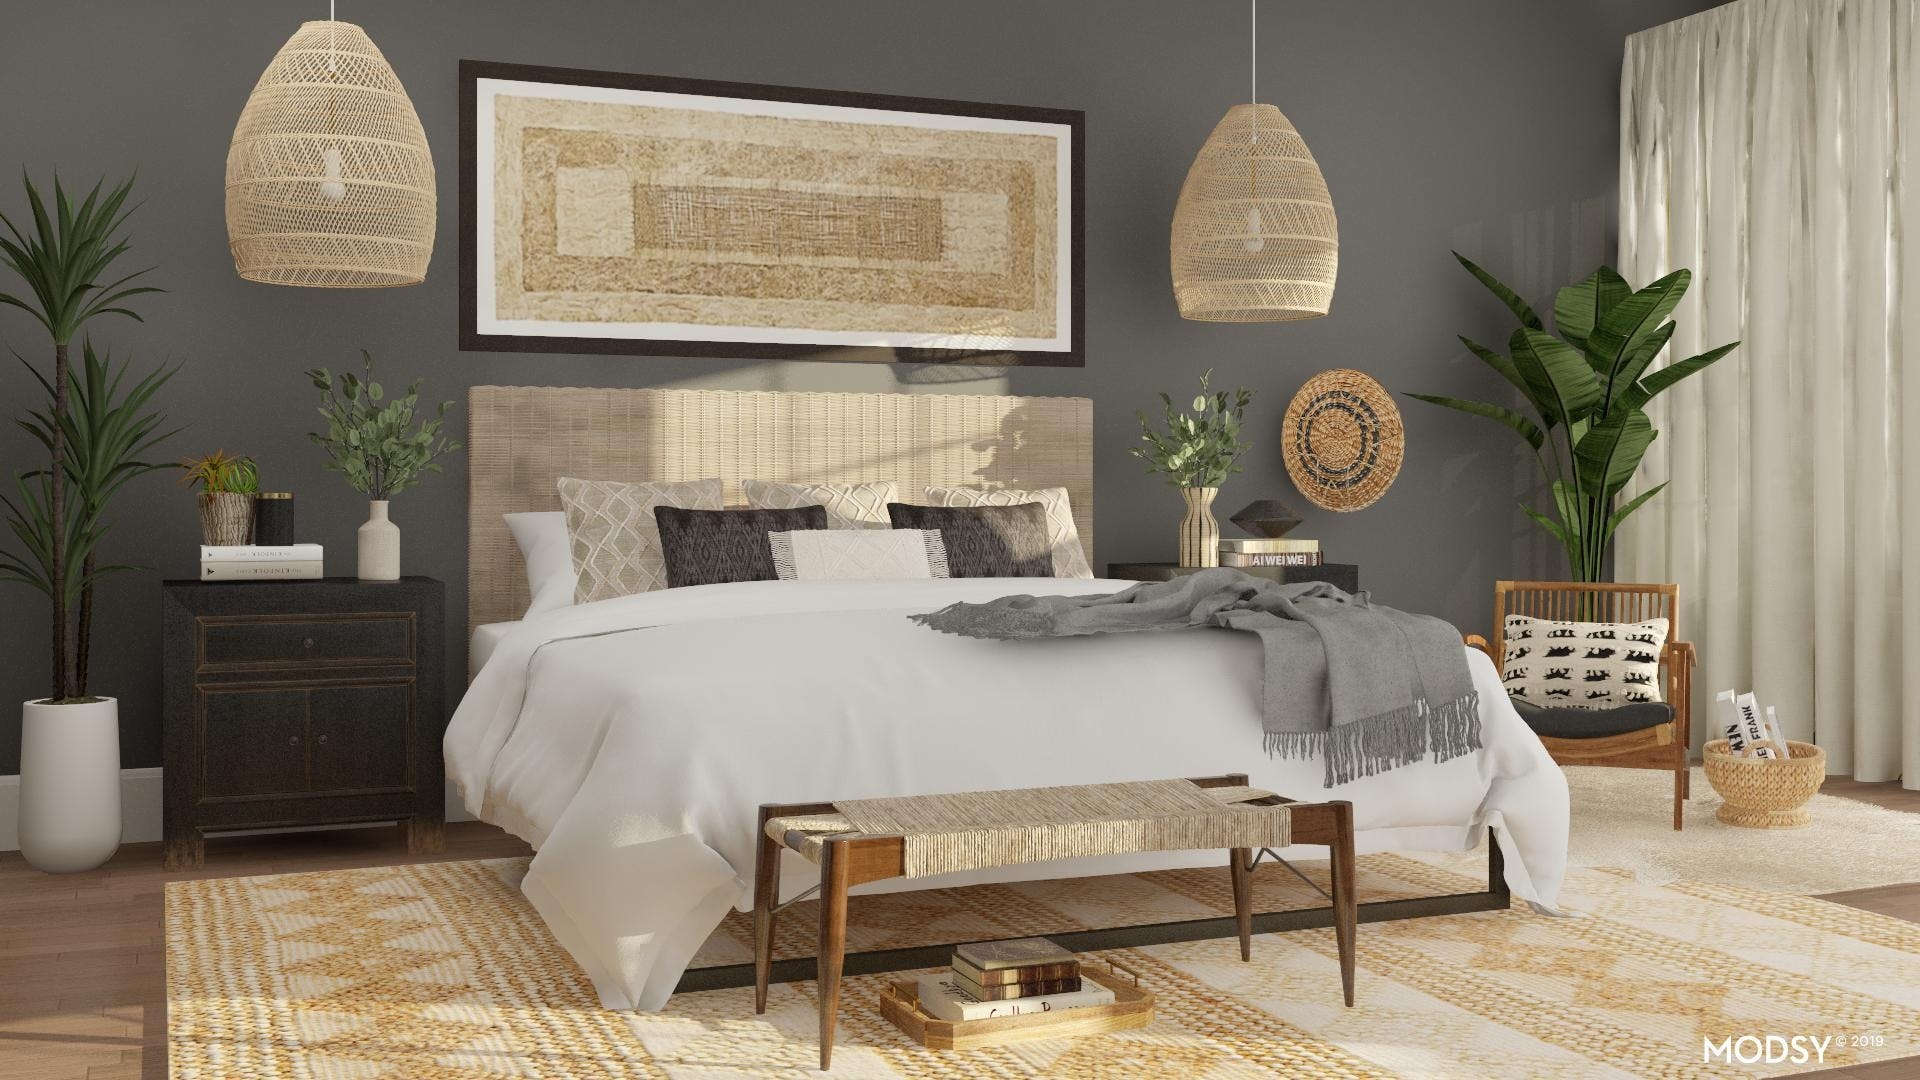 A Bedroom Filled With Natural Textures